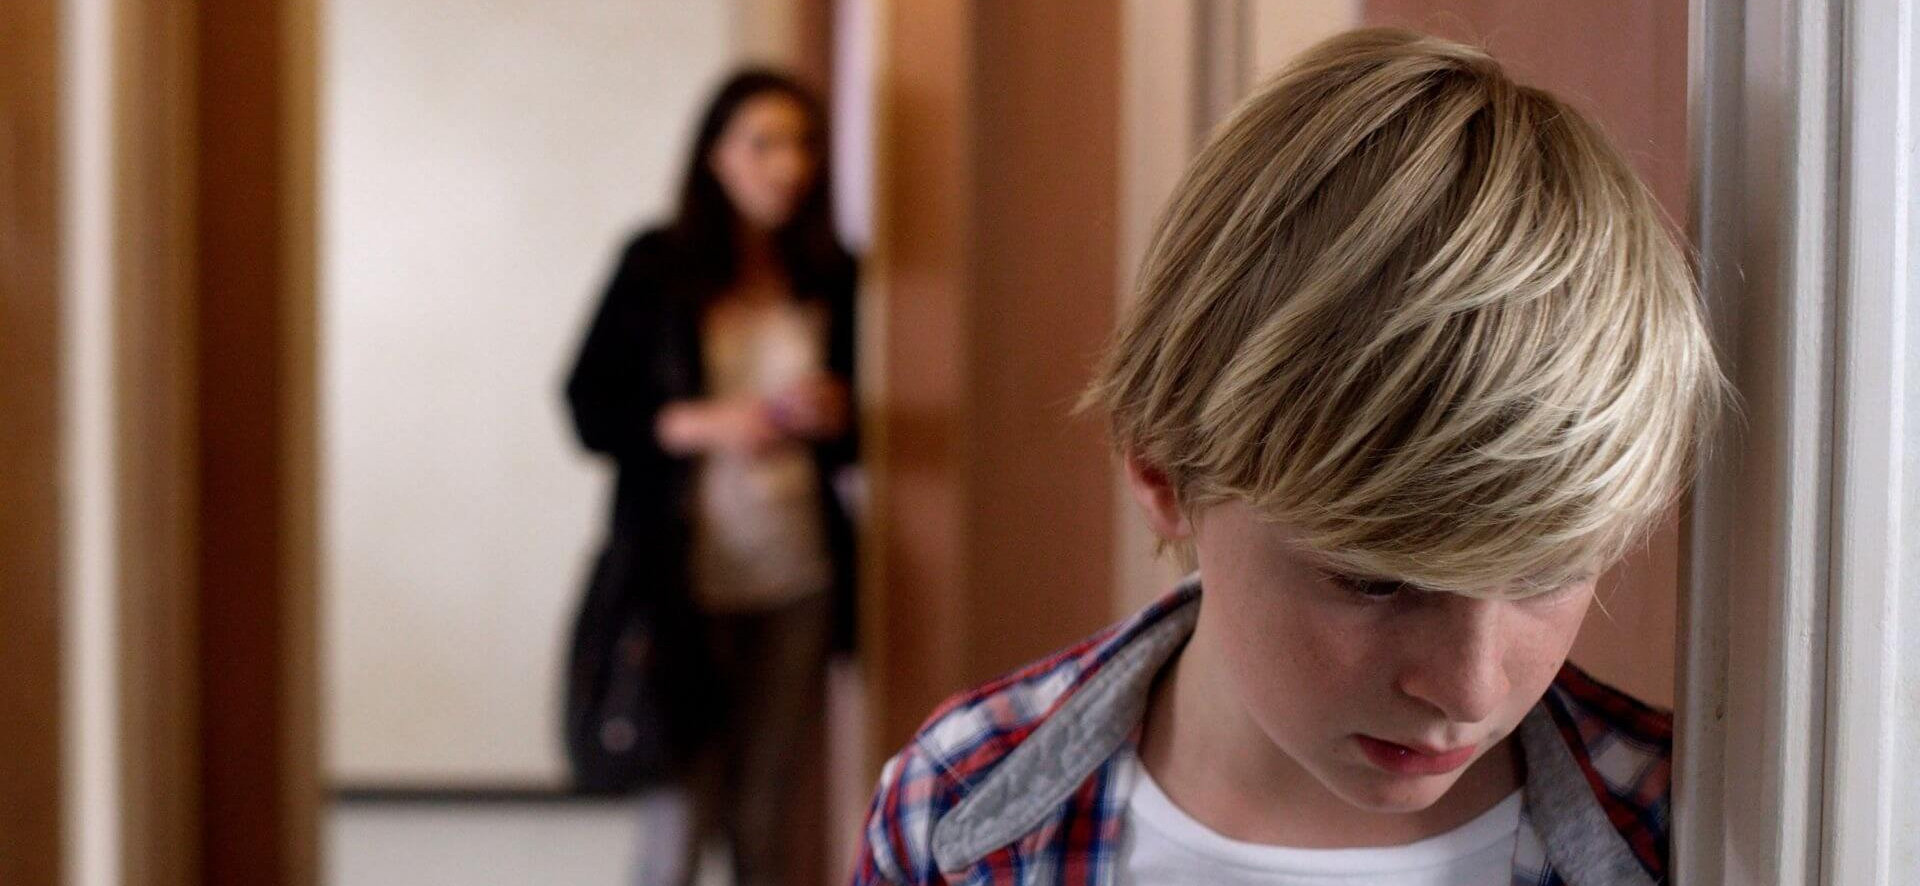 Thomas Gioria stars as 12-year-old Julien who is at the centre of a custody battle